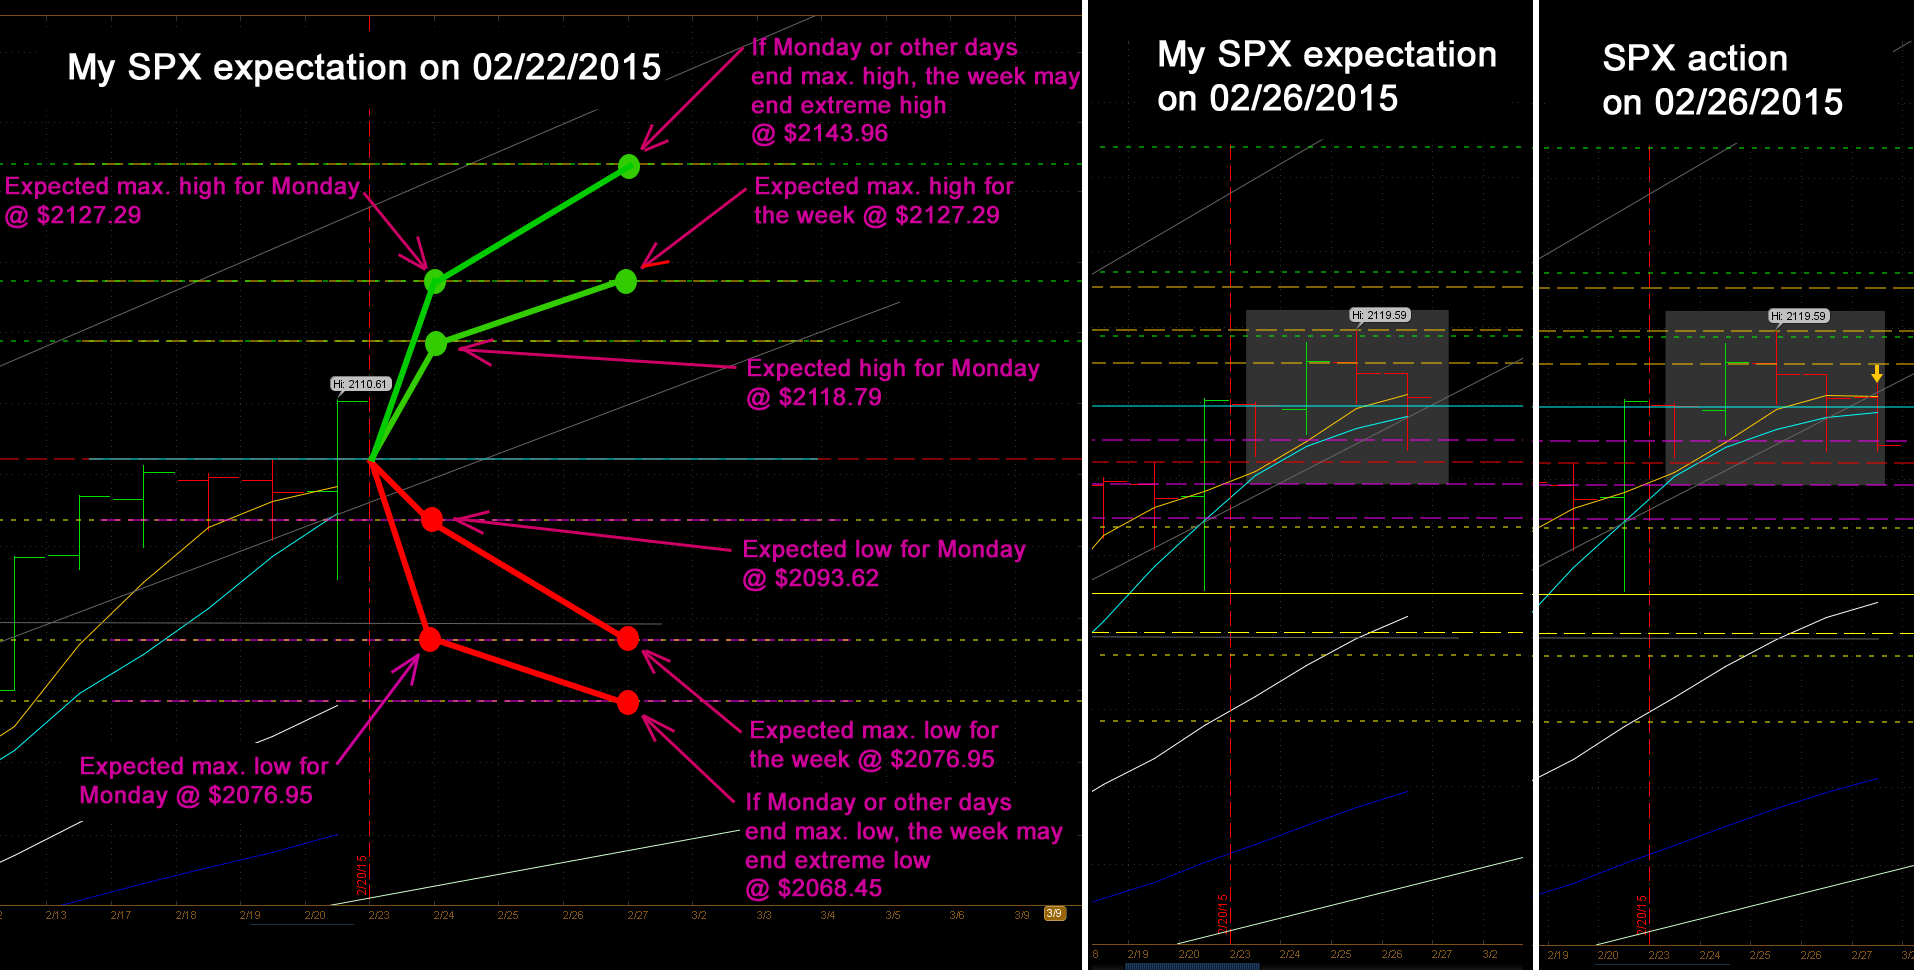 SPX predictions